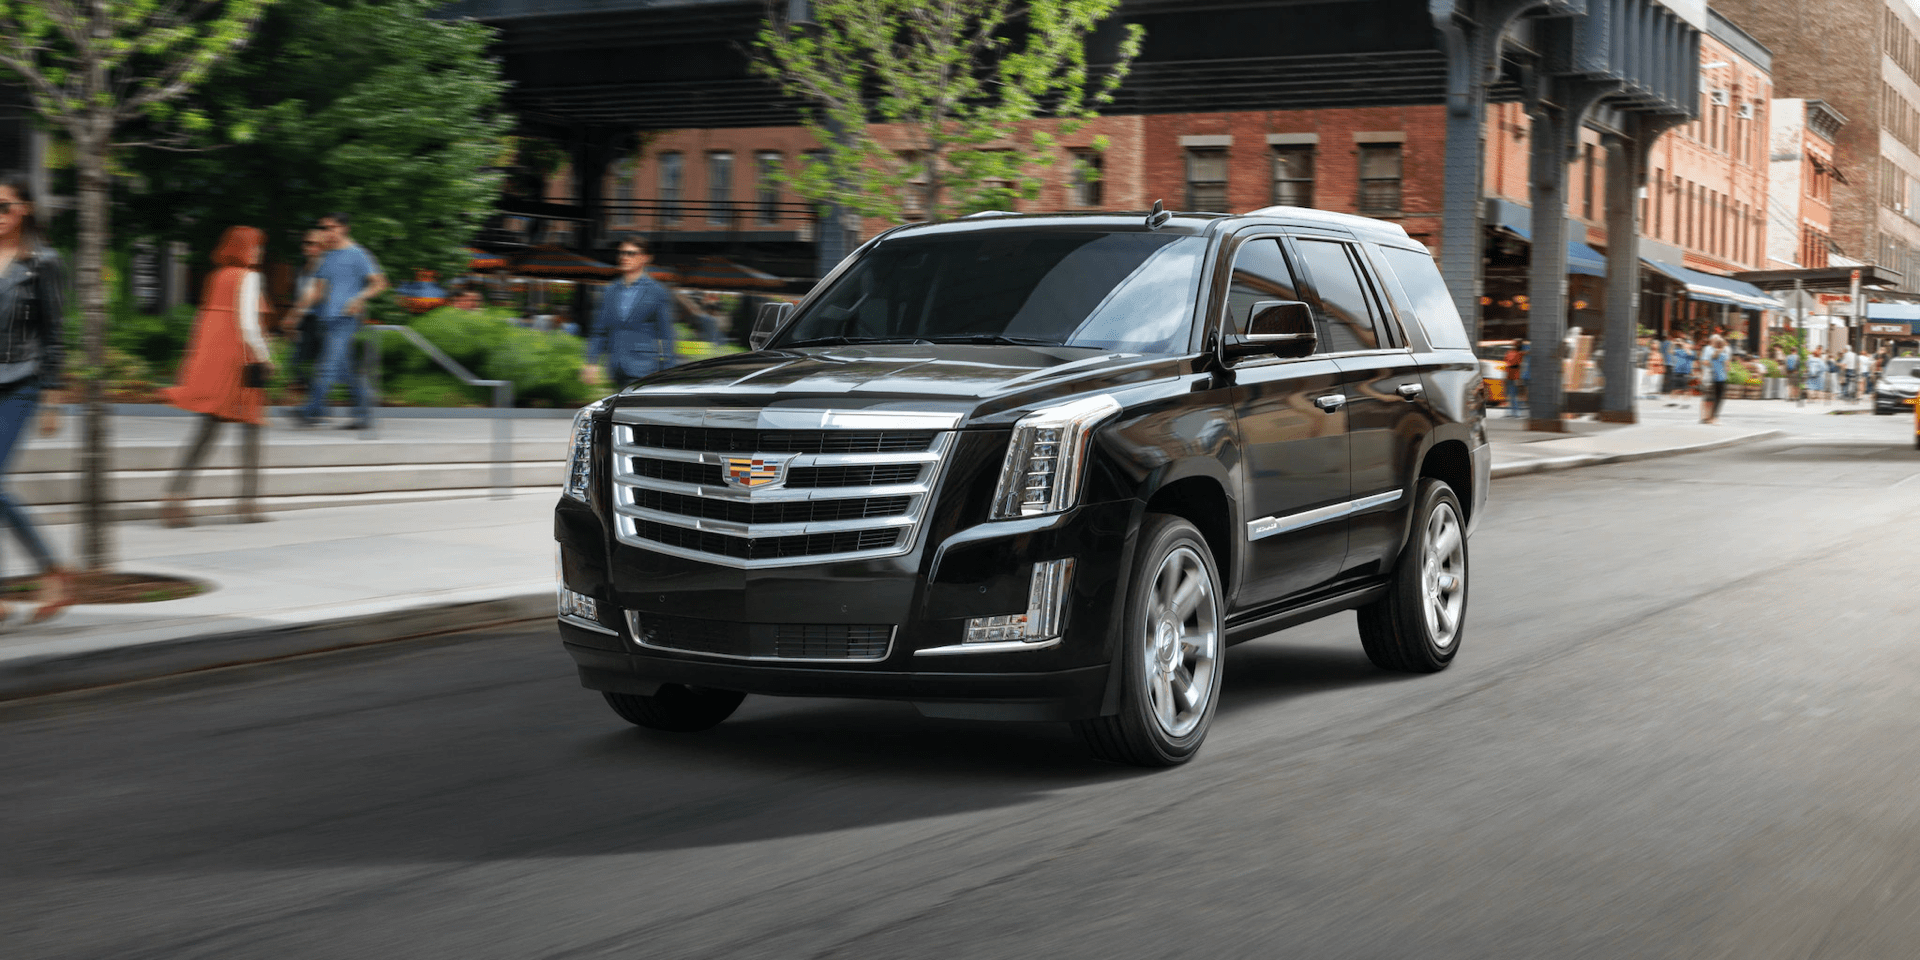 Escalade speeds along city street